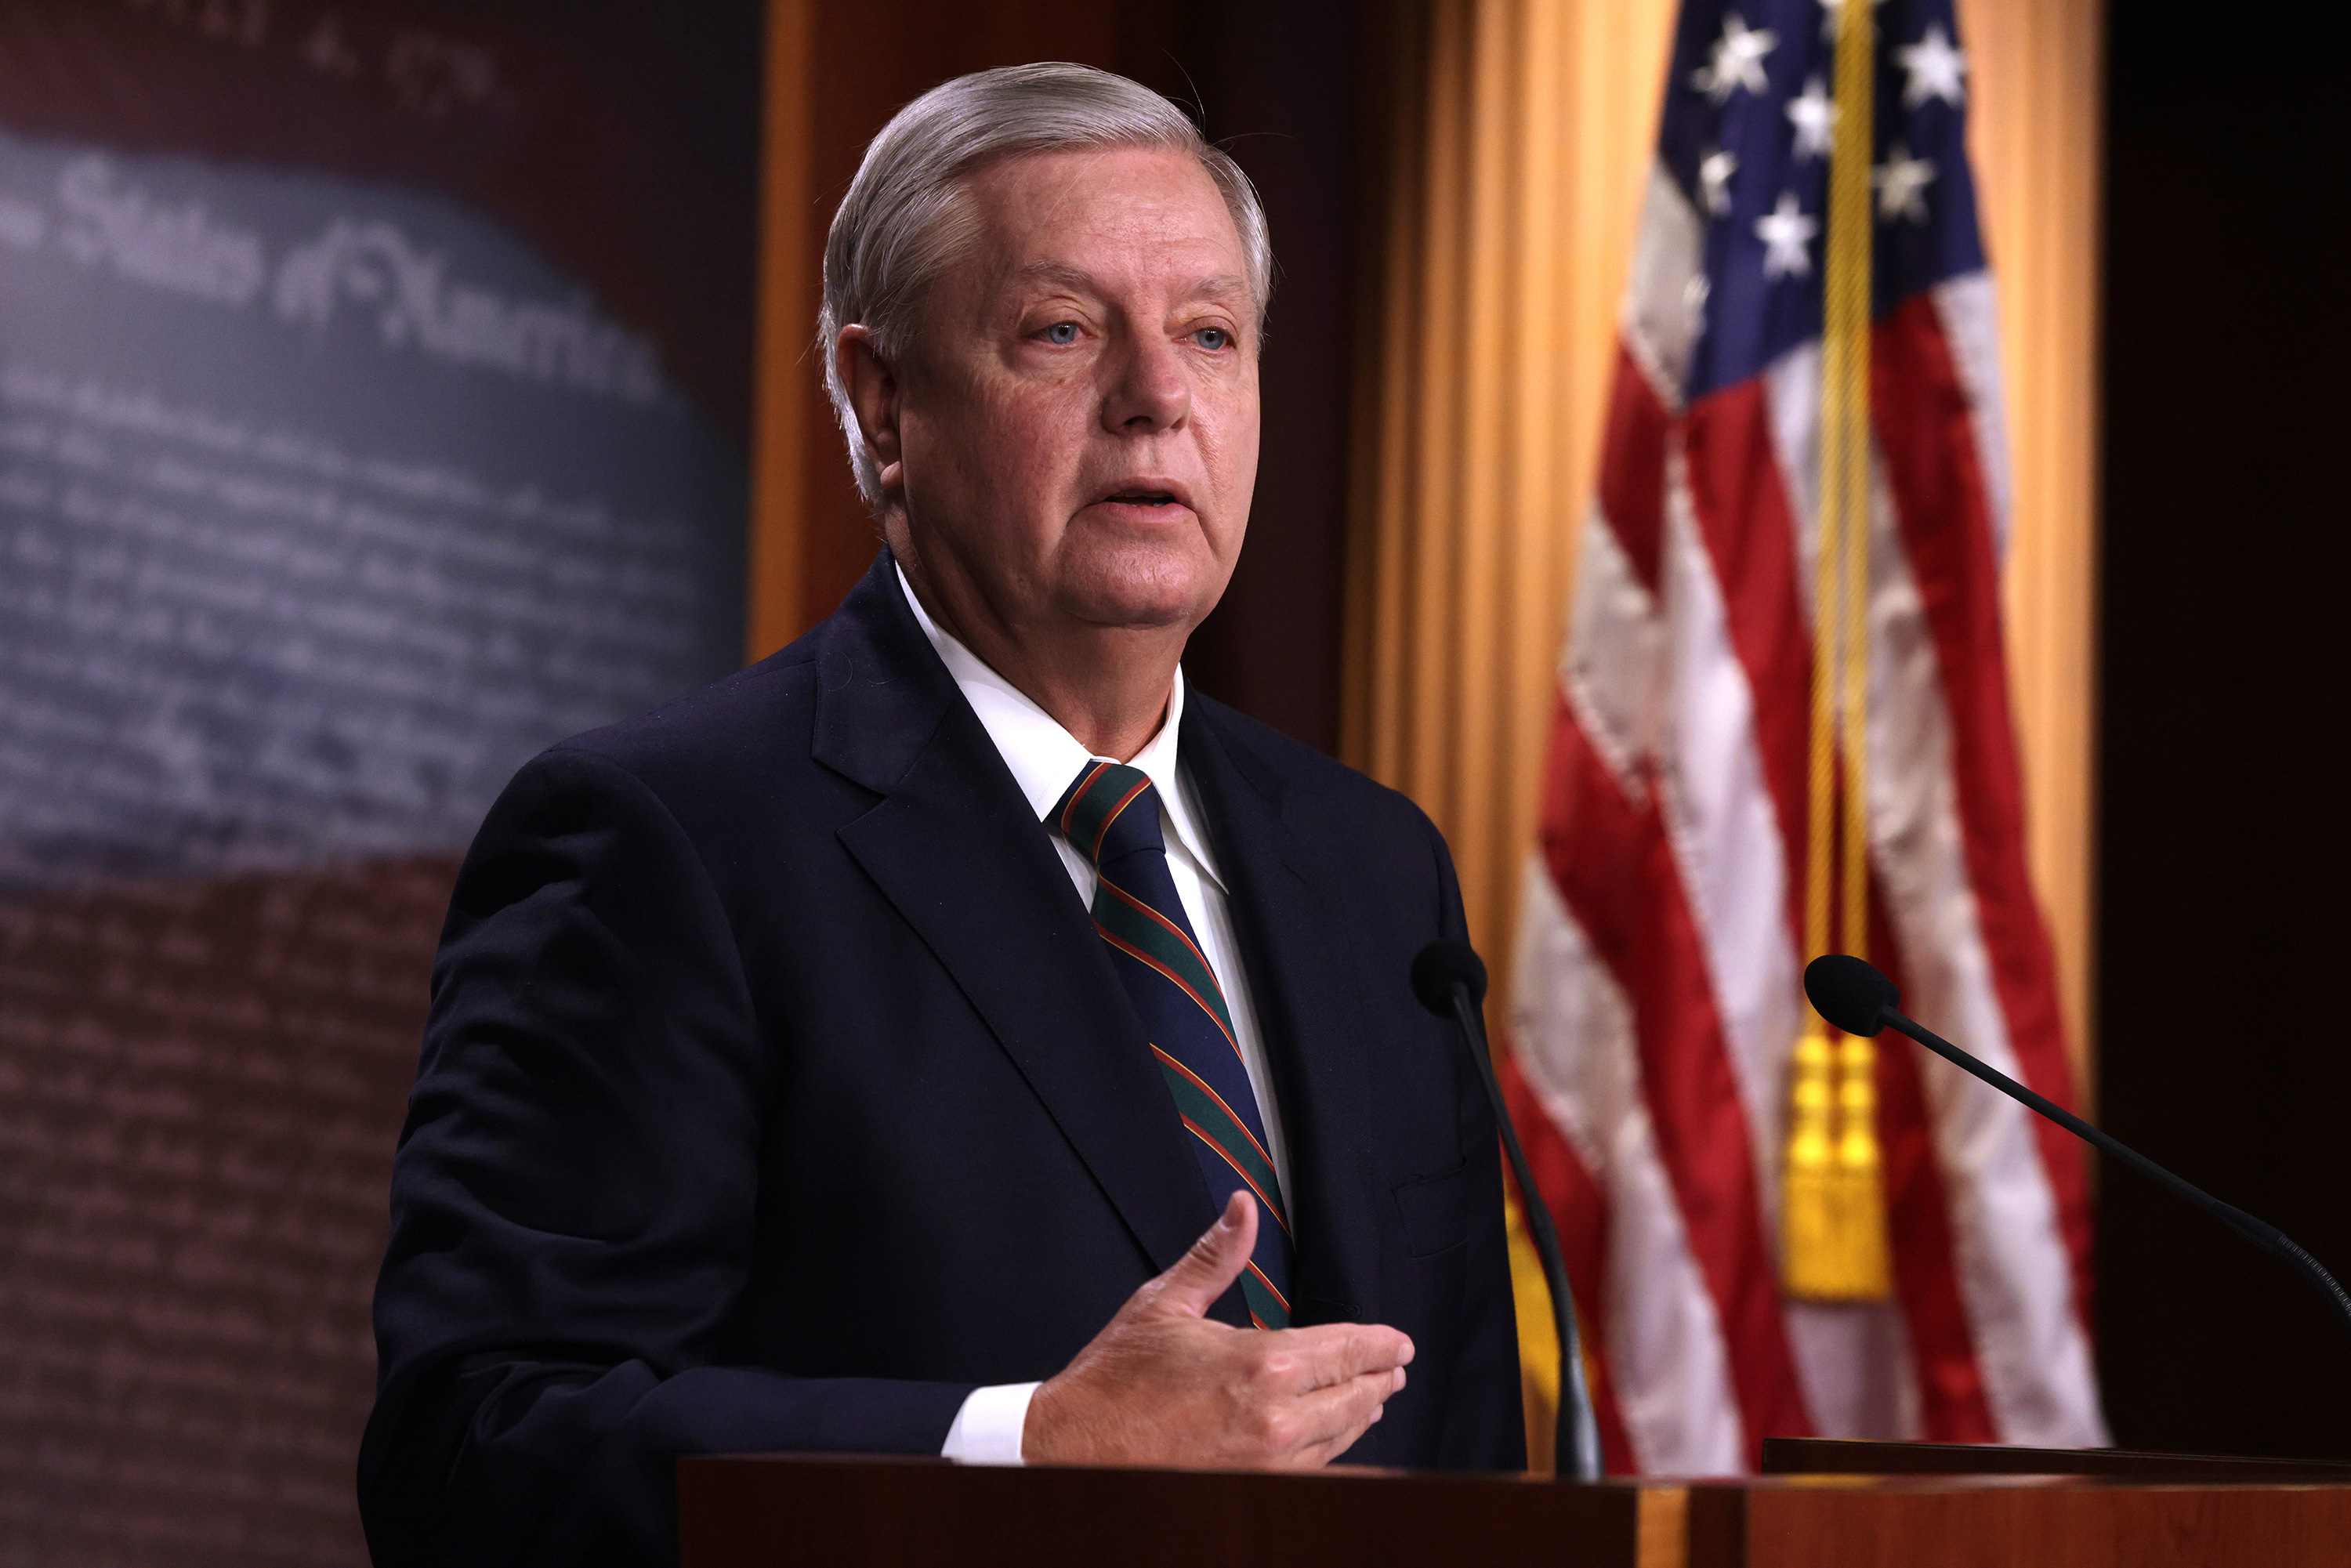 Sen. Lindsey Graham speaks during a news conference on January 7 in Washington, DC.